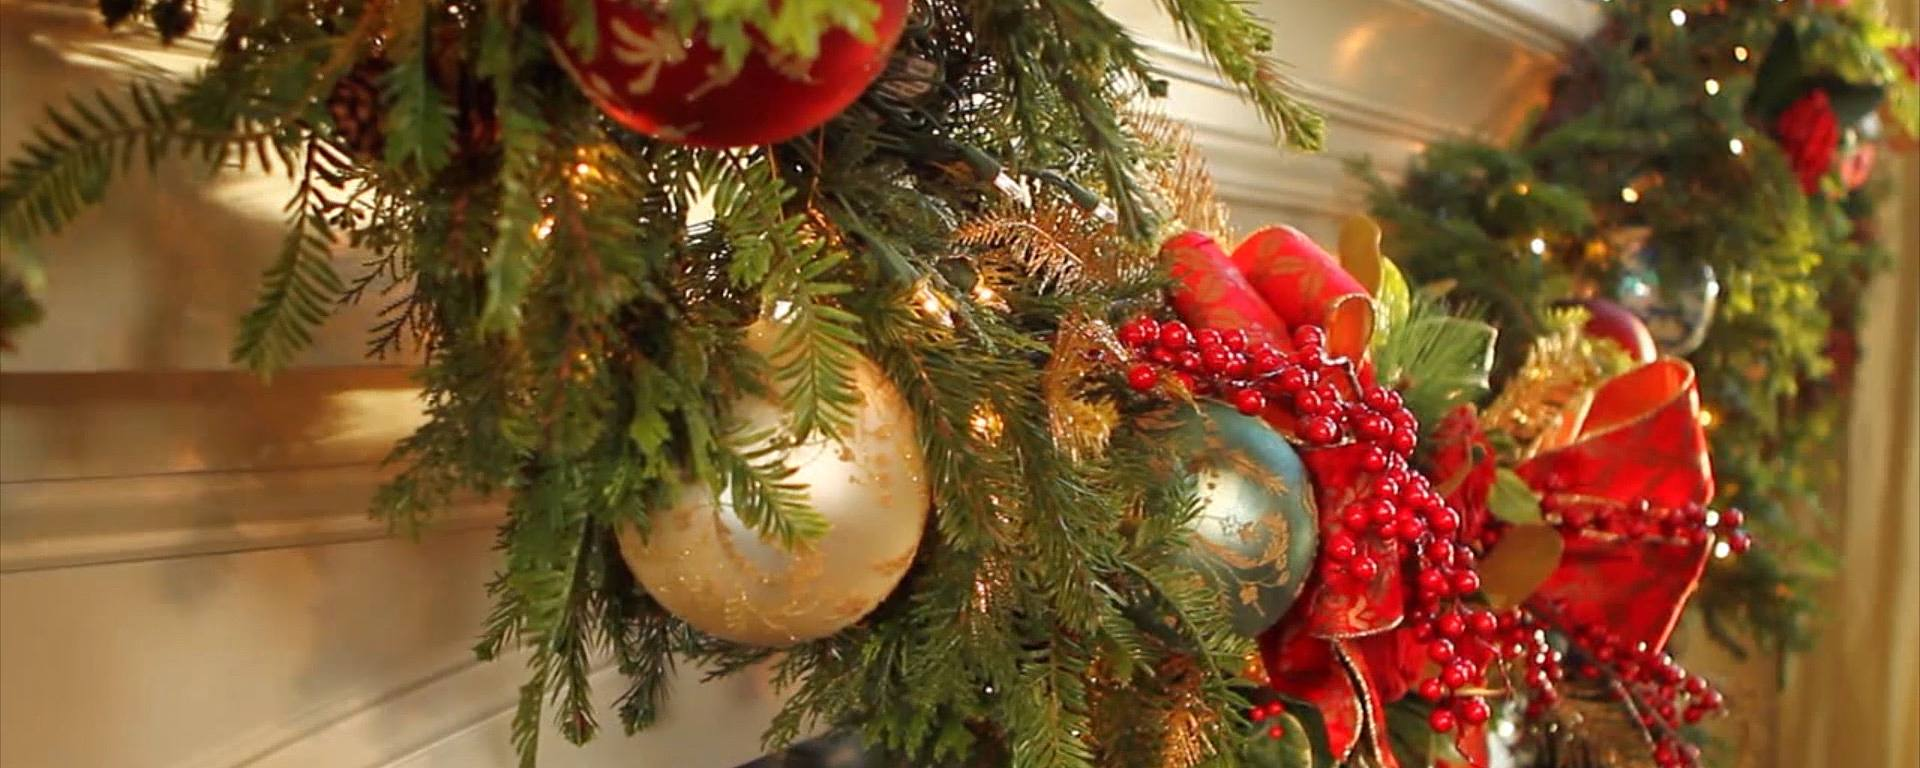 decorate your holiday mantel home style - Decorating Your Mantel For Christmas